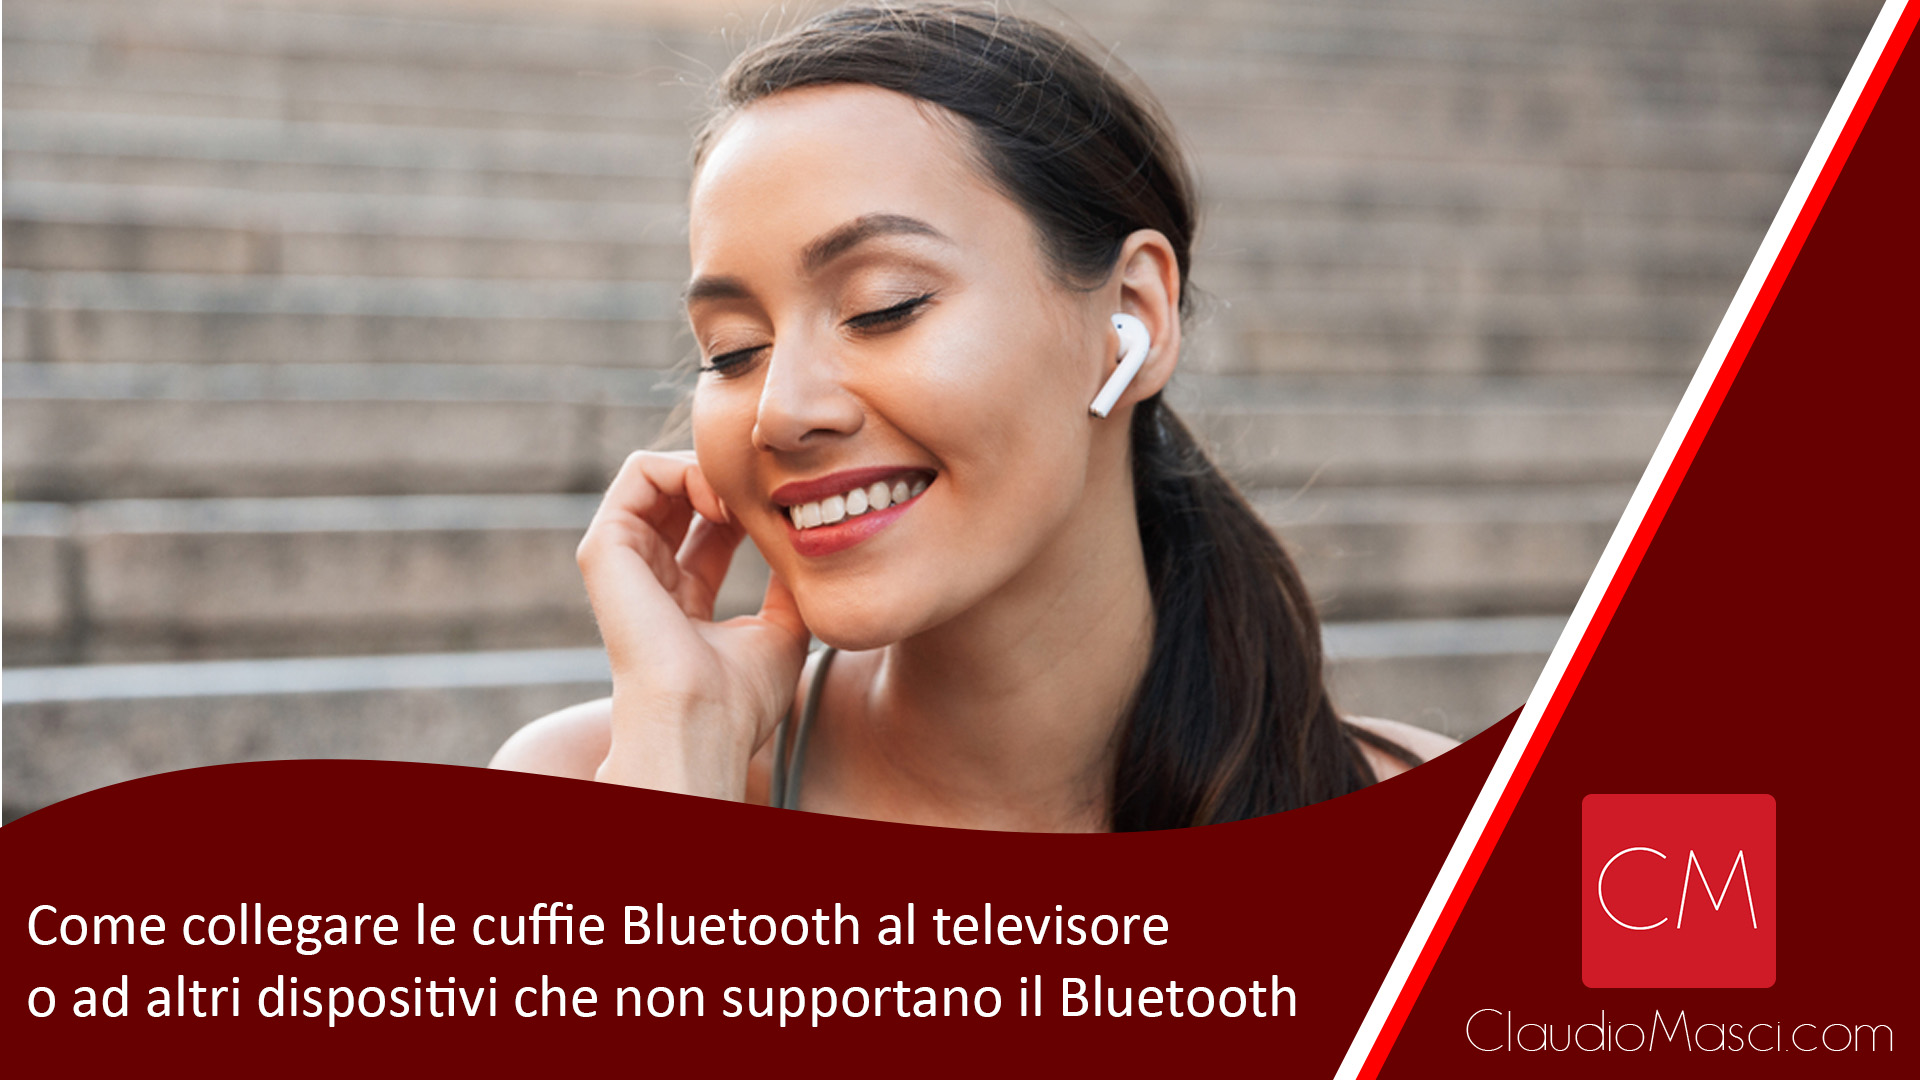 Come collegare le cuffie Bluetooth al televisore o ad altri dispositivi che non supportano il Bluetooth